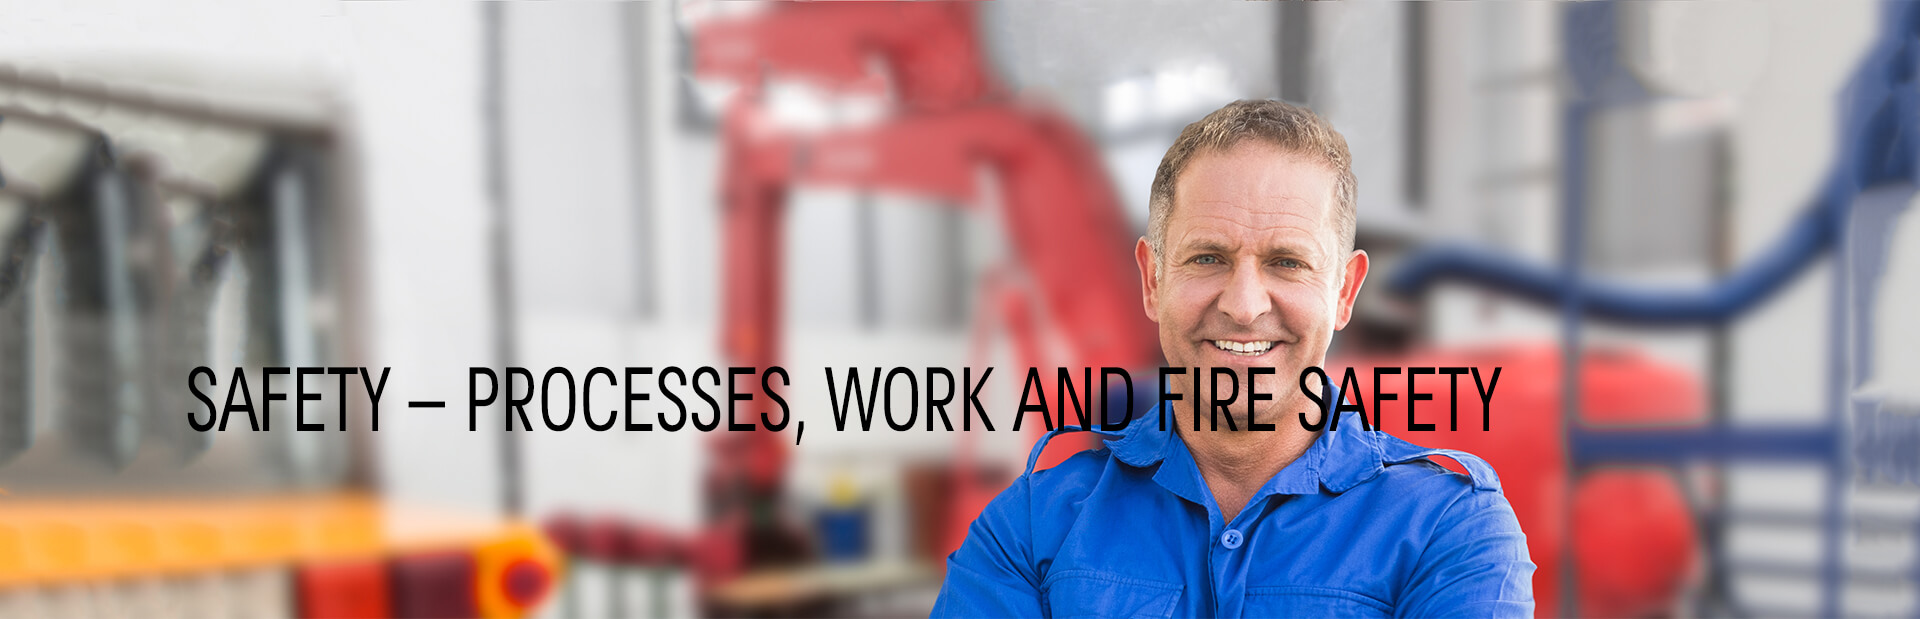 Safety – processes, work and fire safety